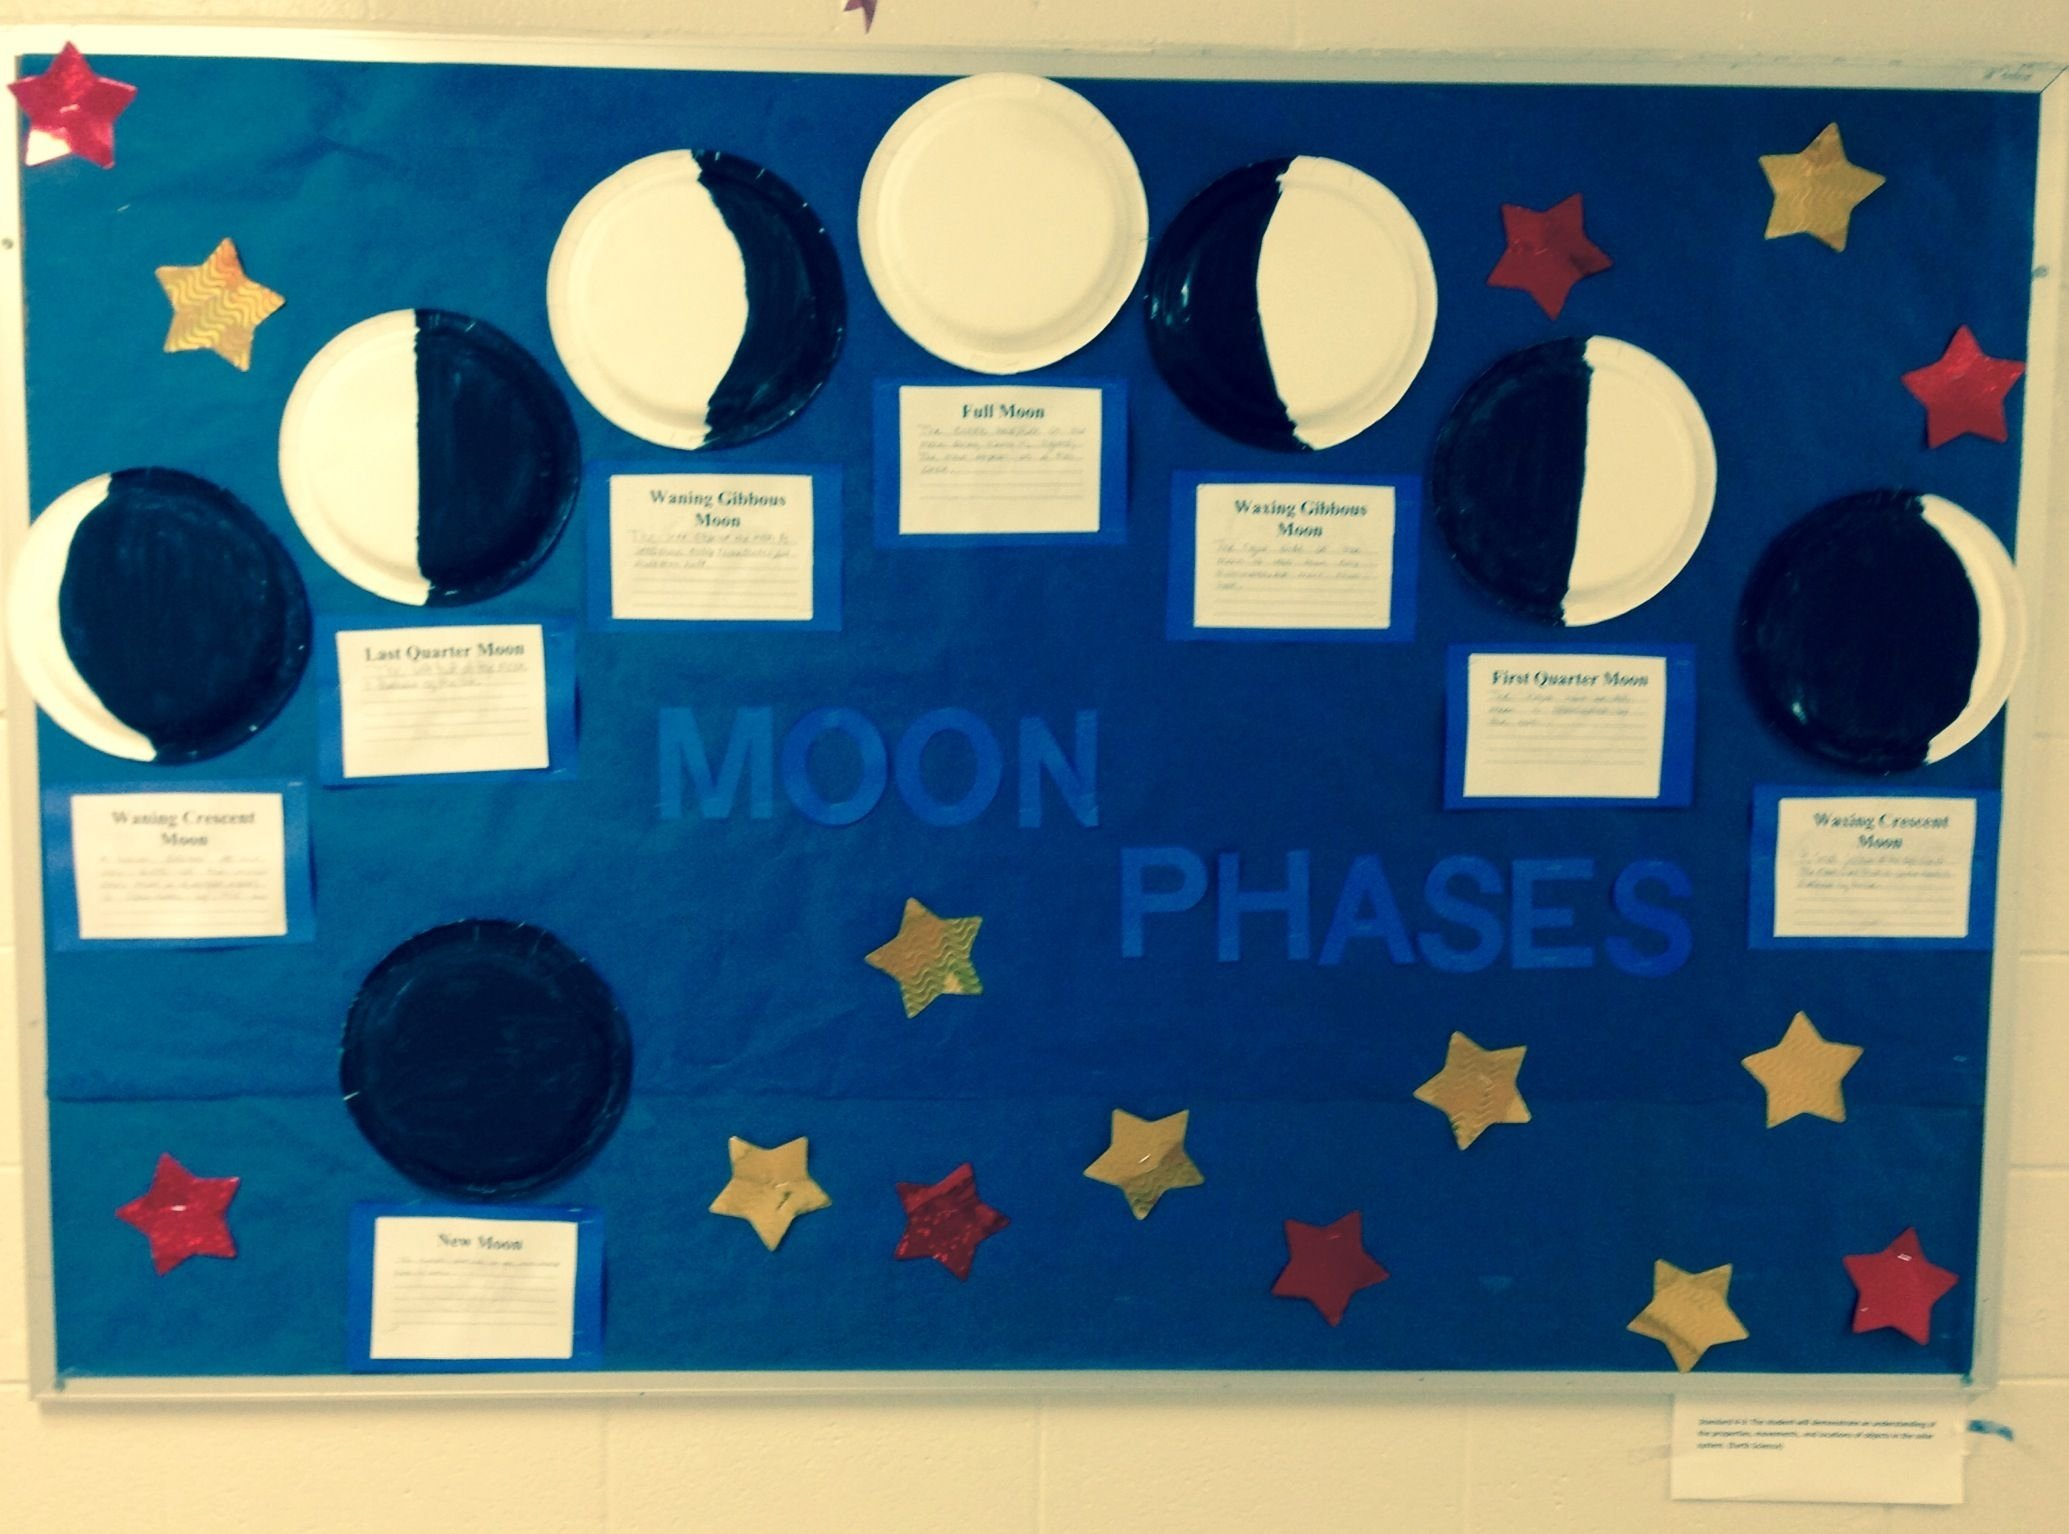 10 Attractive Phases Of The Moon Project Ideas my moon phases bulletin board diy pinterest moon phases 2020